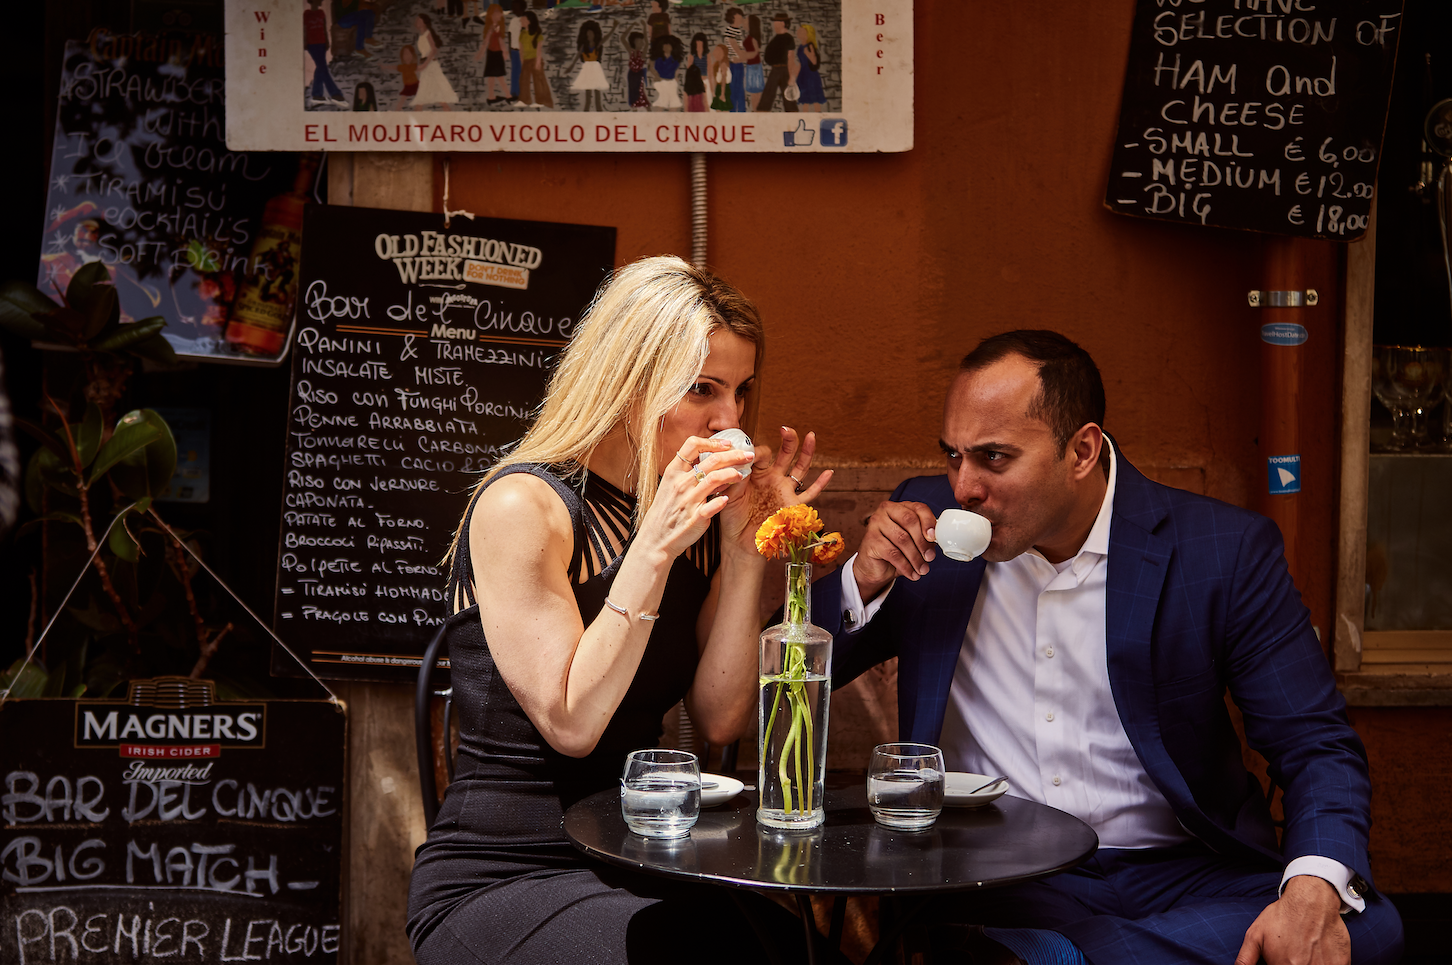 Engagement photos in coffee cafe.  Destination wedding planner Andrea Eppolito. Engagement photos in Italy.  Italian Imagery by  D2 Photography .